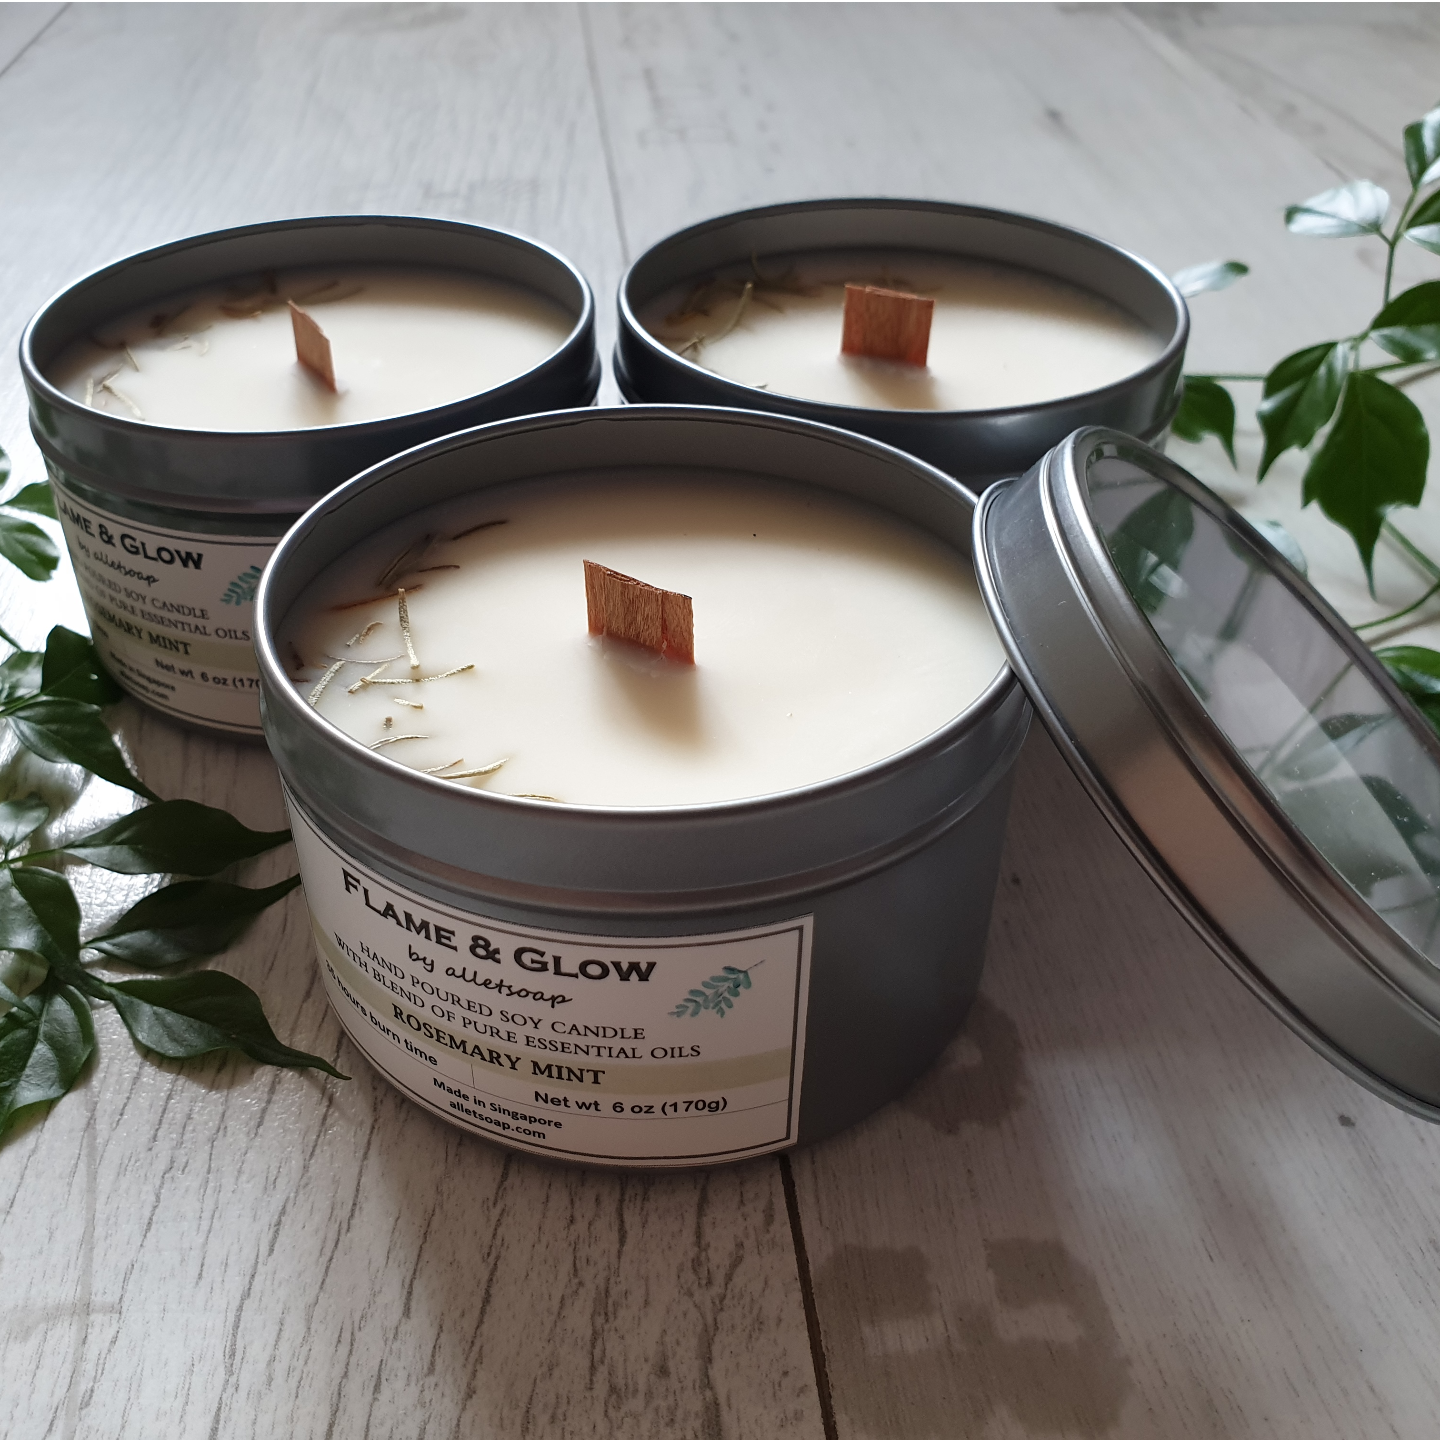 Soy Candle - Rosemary Mint 6 oz